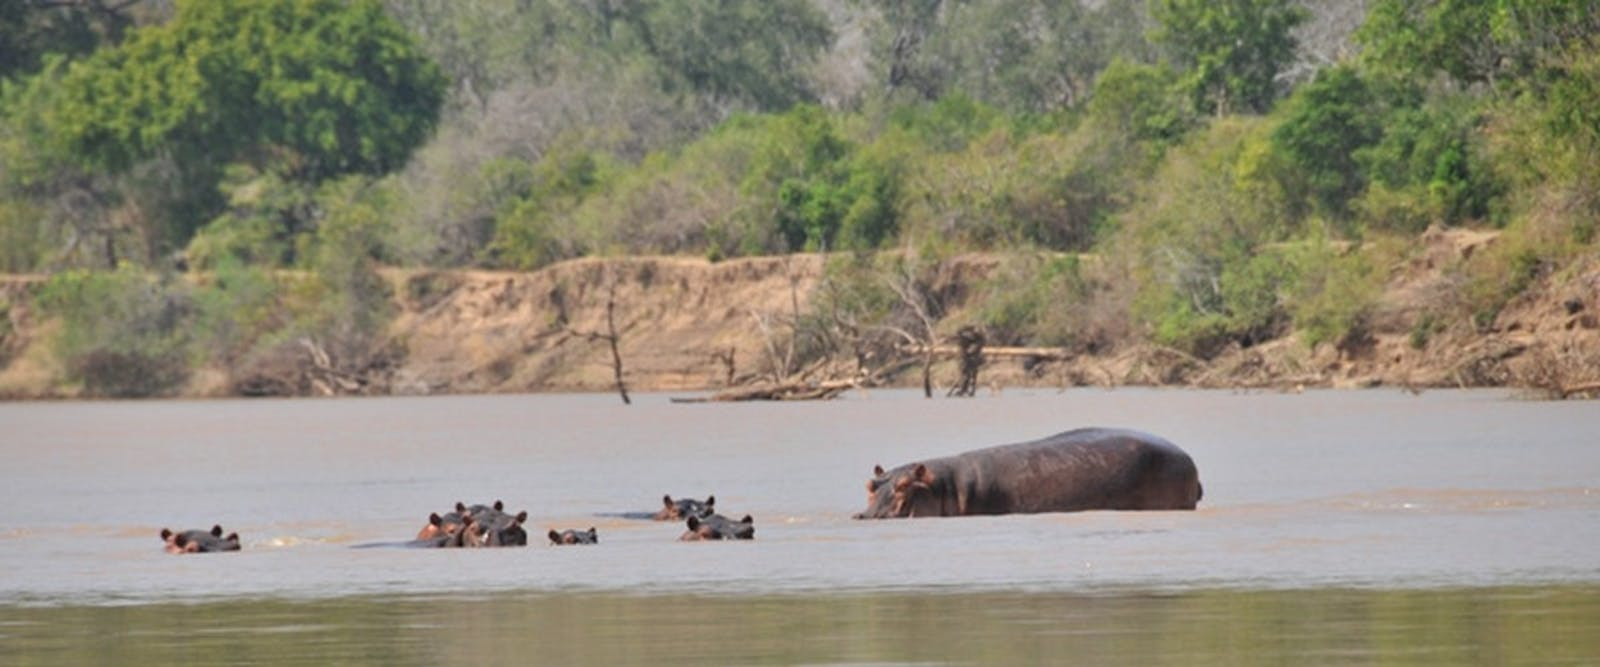 Hippos in the river at Serena Mivumo River Lodge